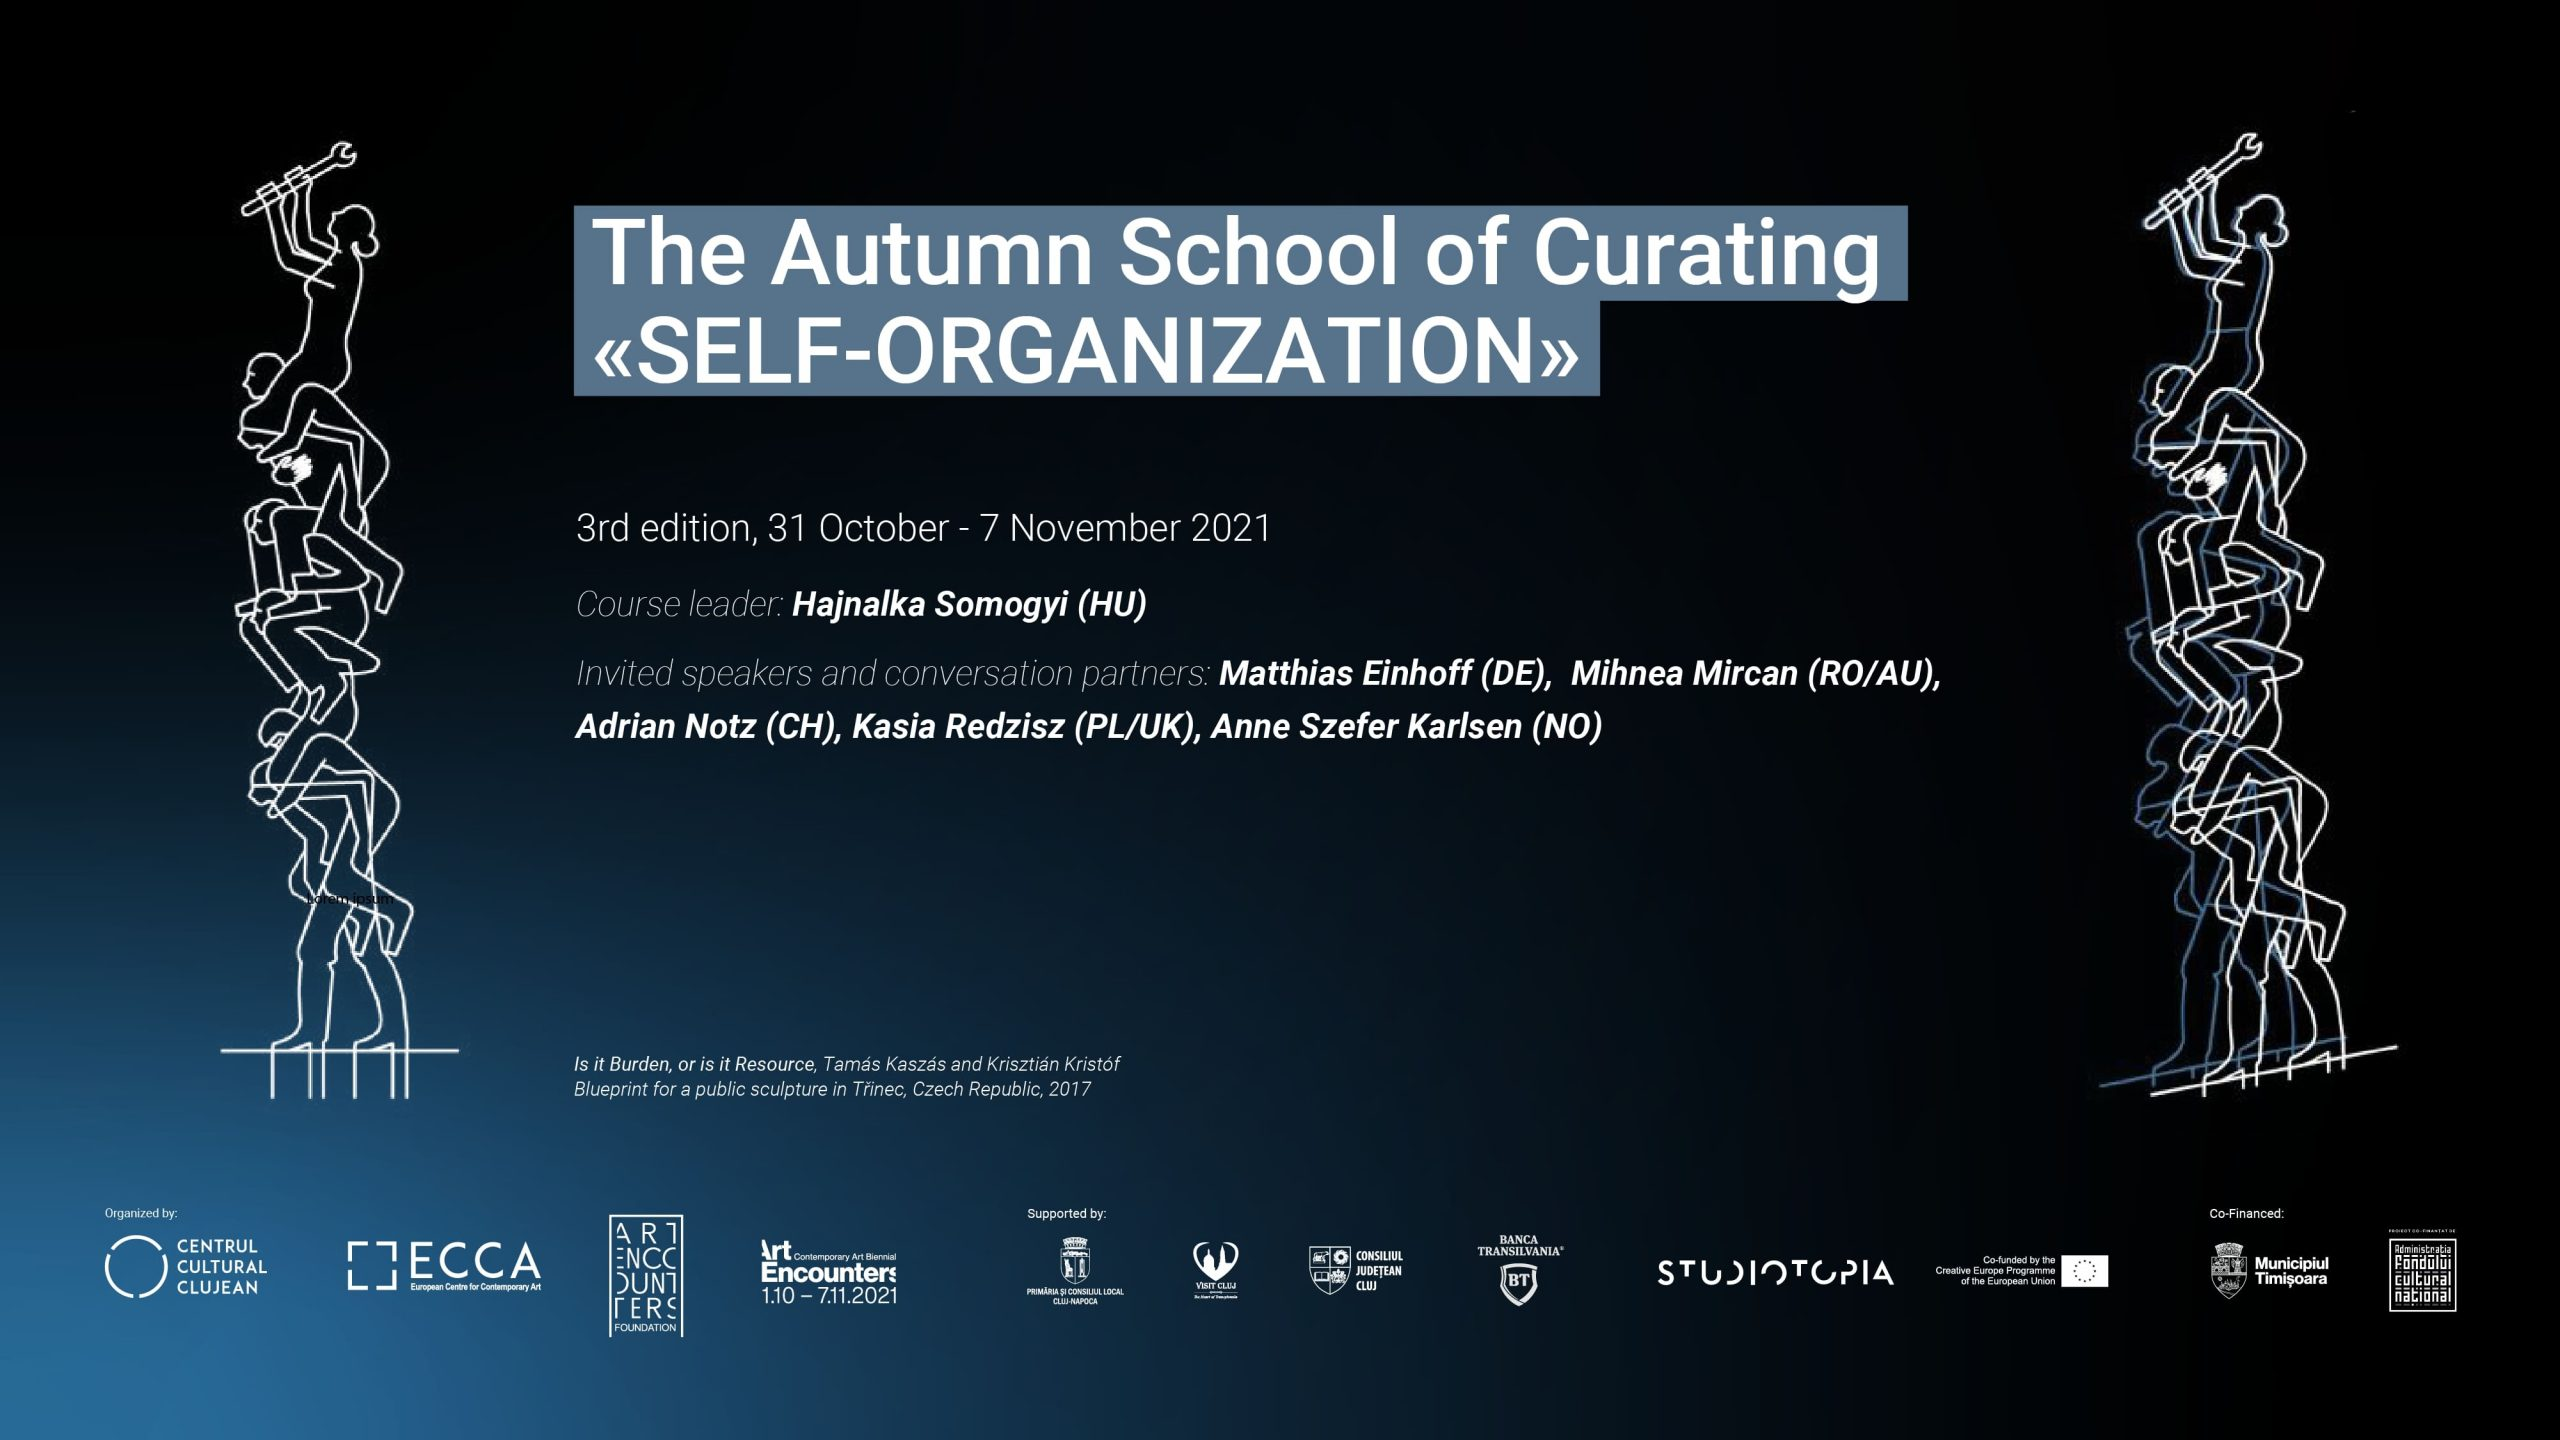 The Autumn School of Curating - 3rd edition